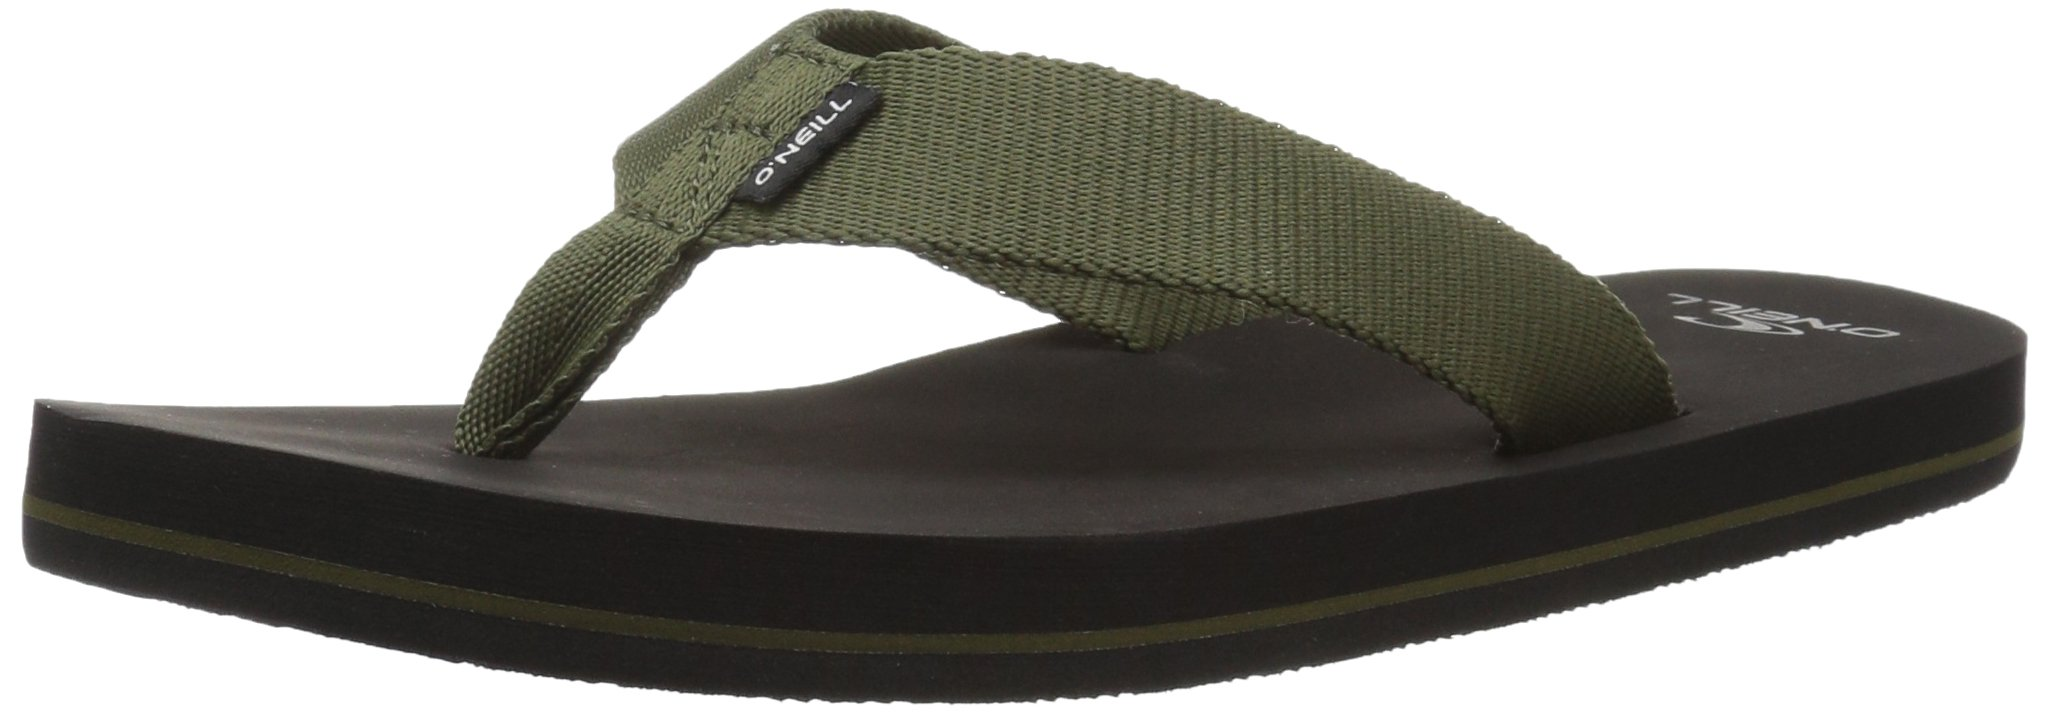 O'Neill Men's Bolsa Sandal Flip-Flop, Army, 13 Medium US